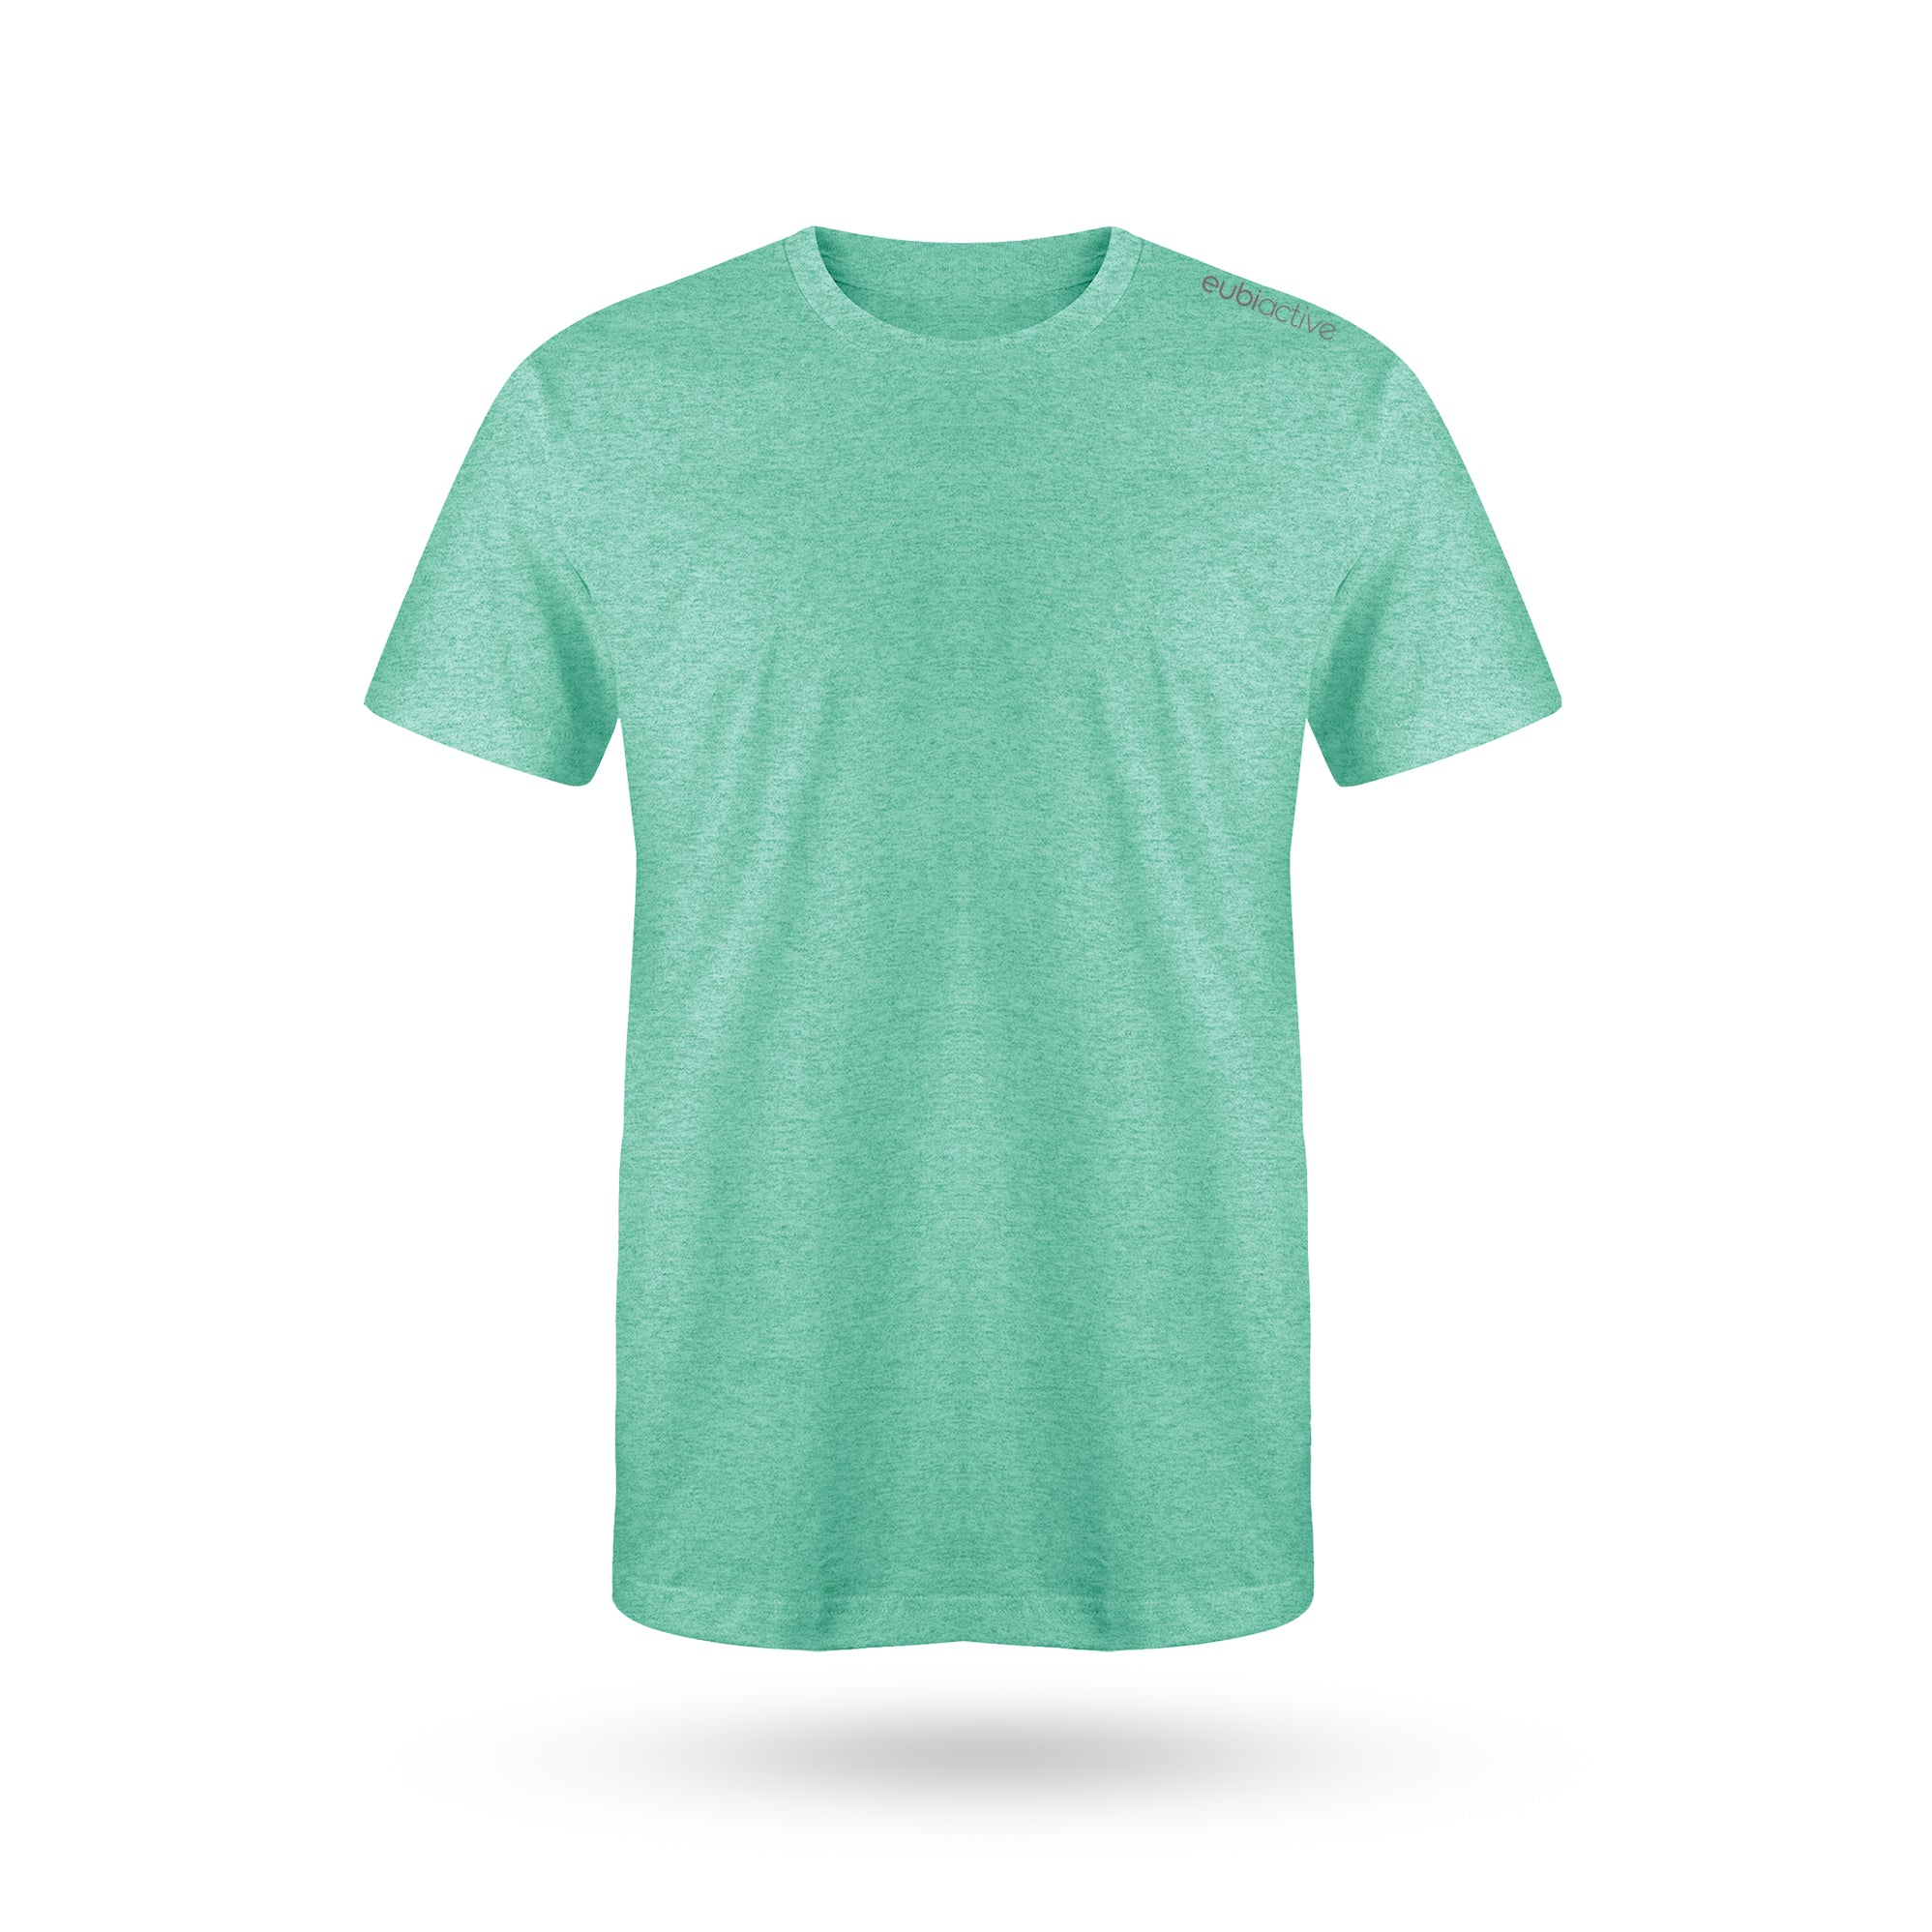 [SALE] Featherlite Active Tee - Mint